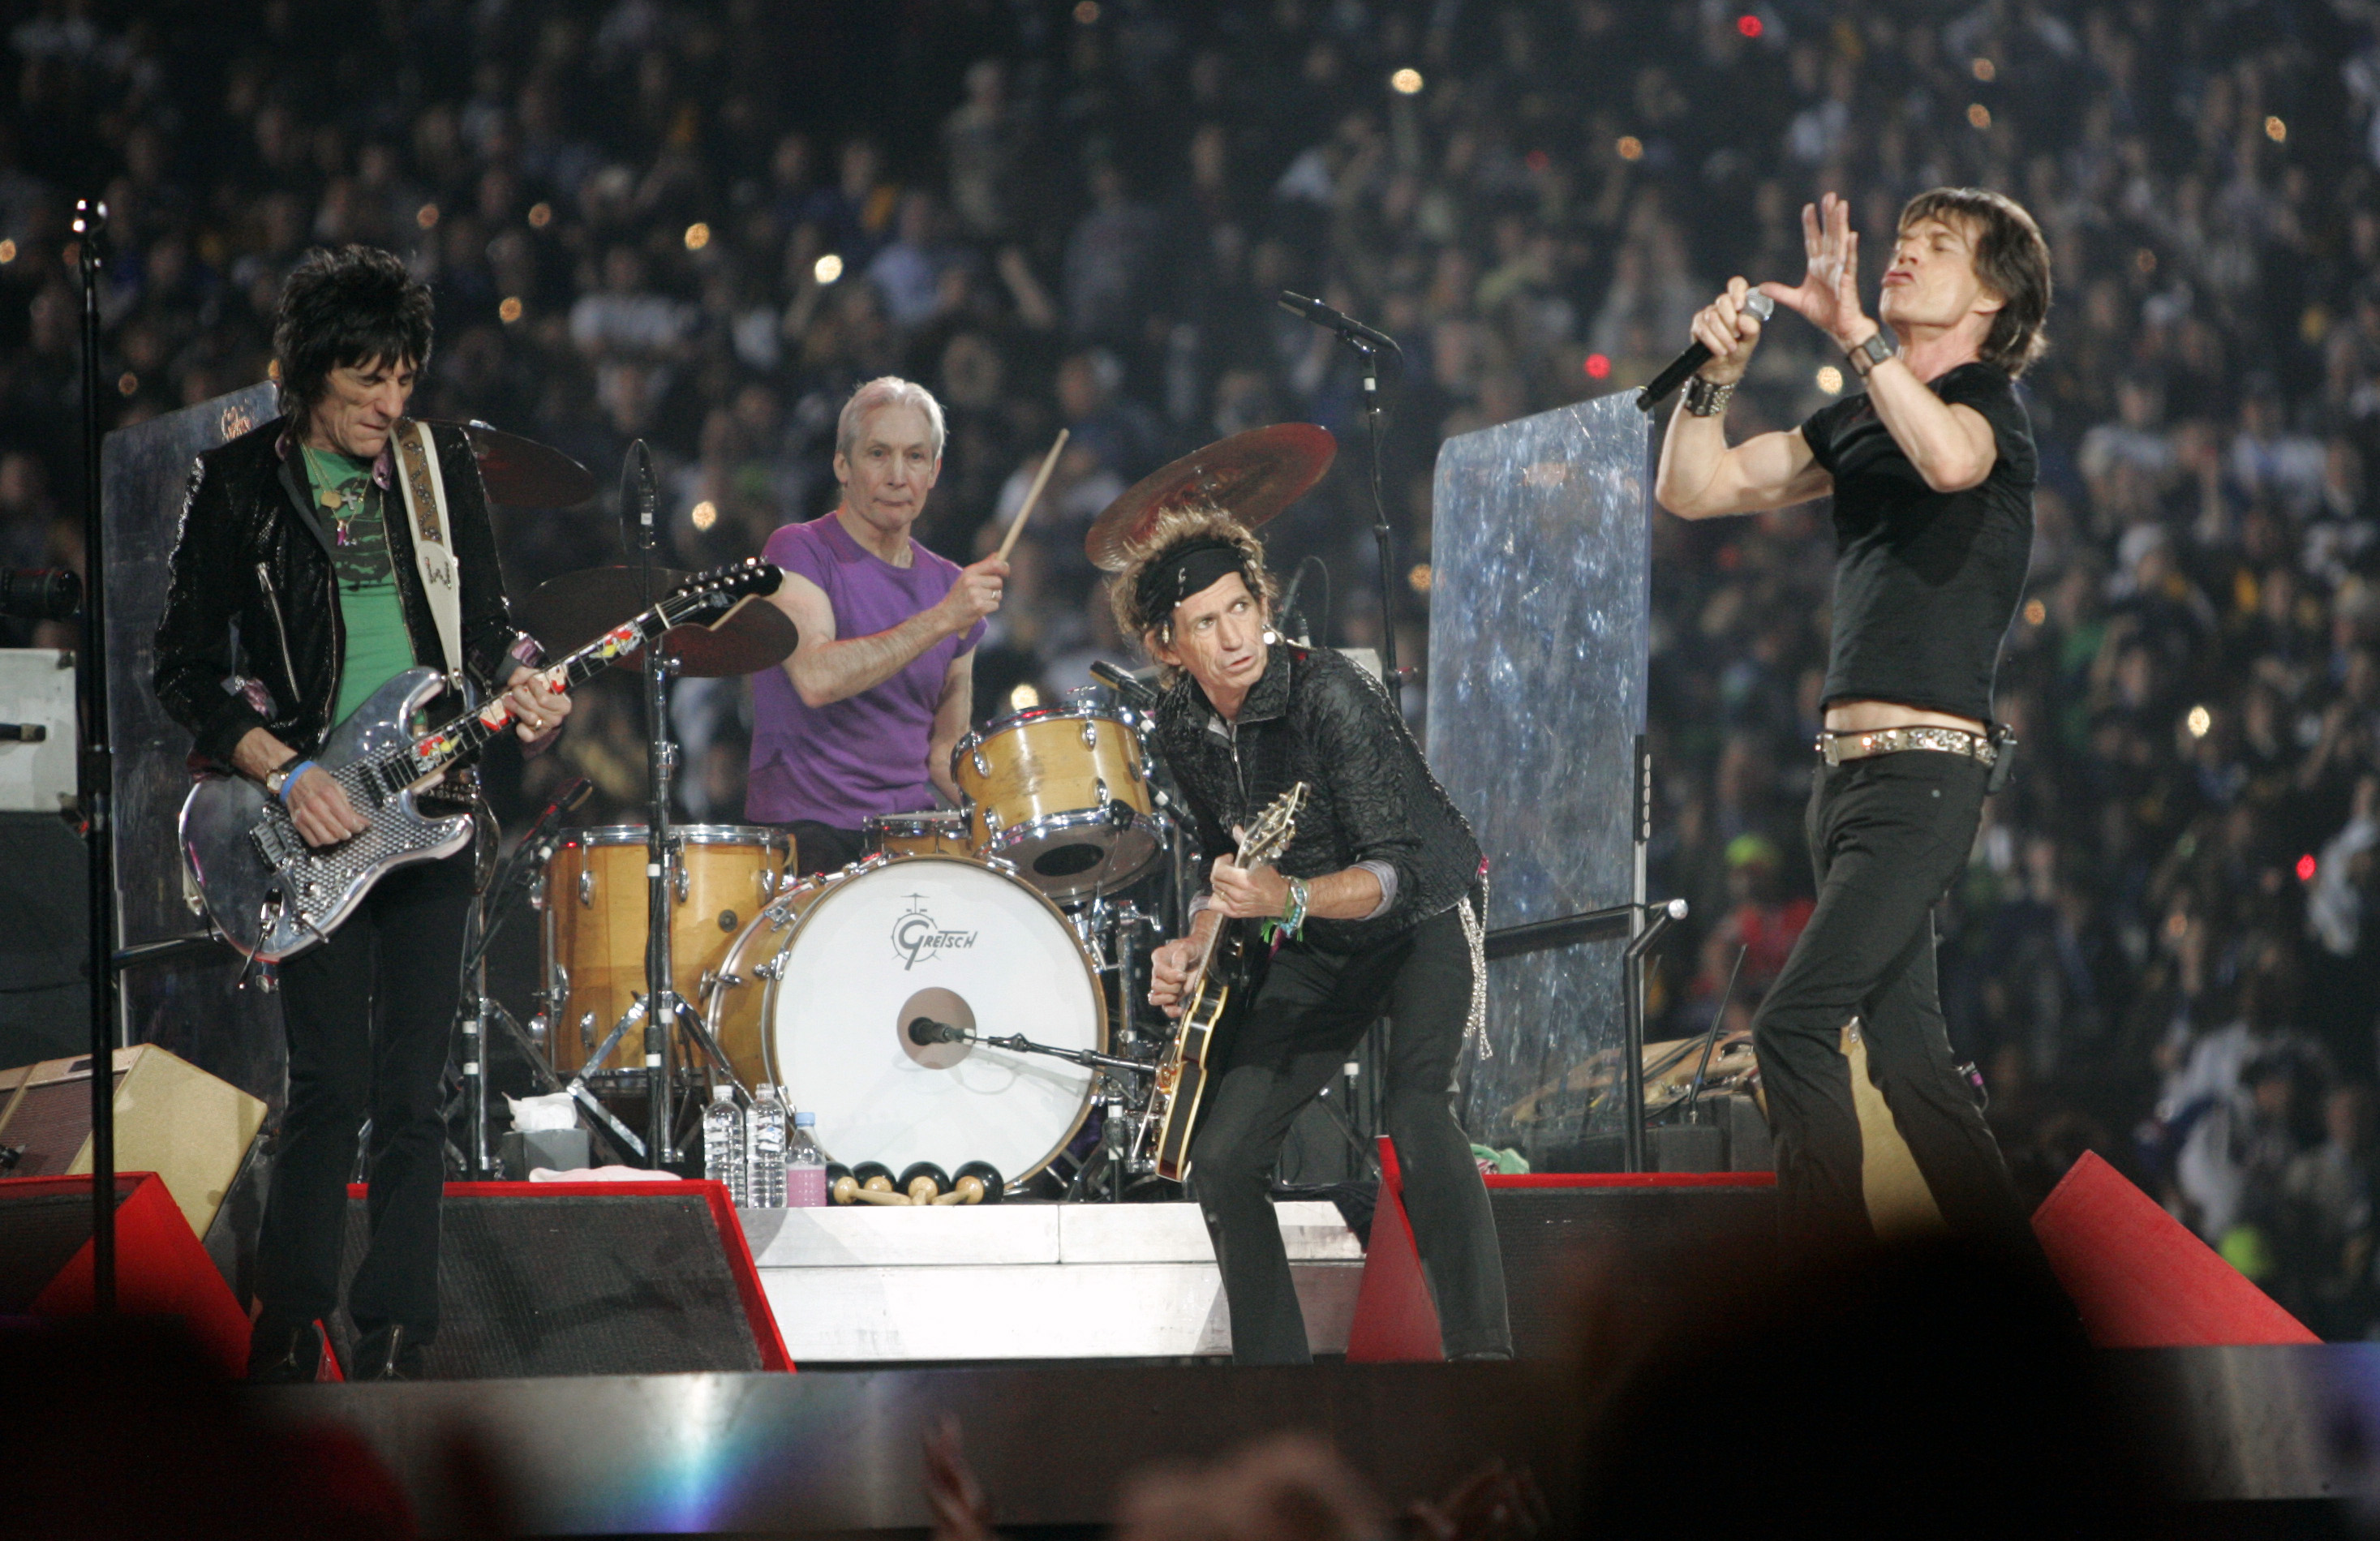 THE ROLLING STONES RETURN TO LIVE ACTION WITH SPECTACULAR ARENA SHOWS ON BOTH SIDES OF THE ATLANTIC